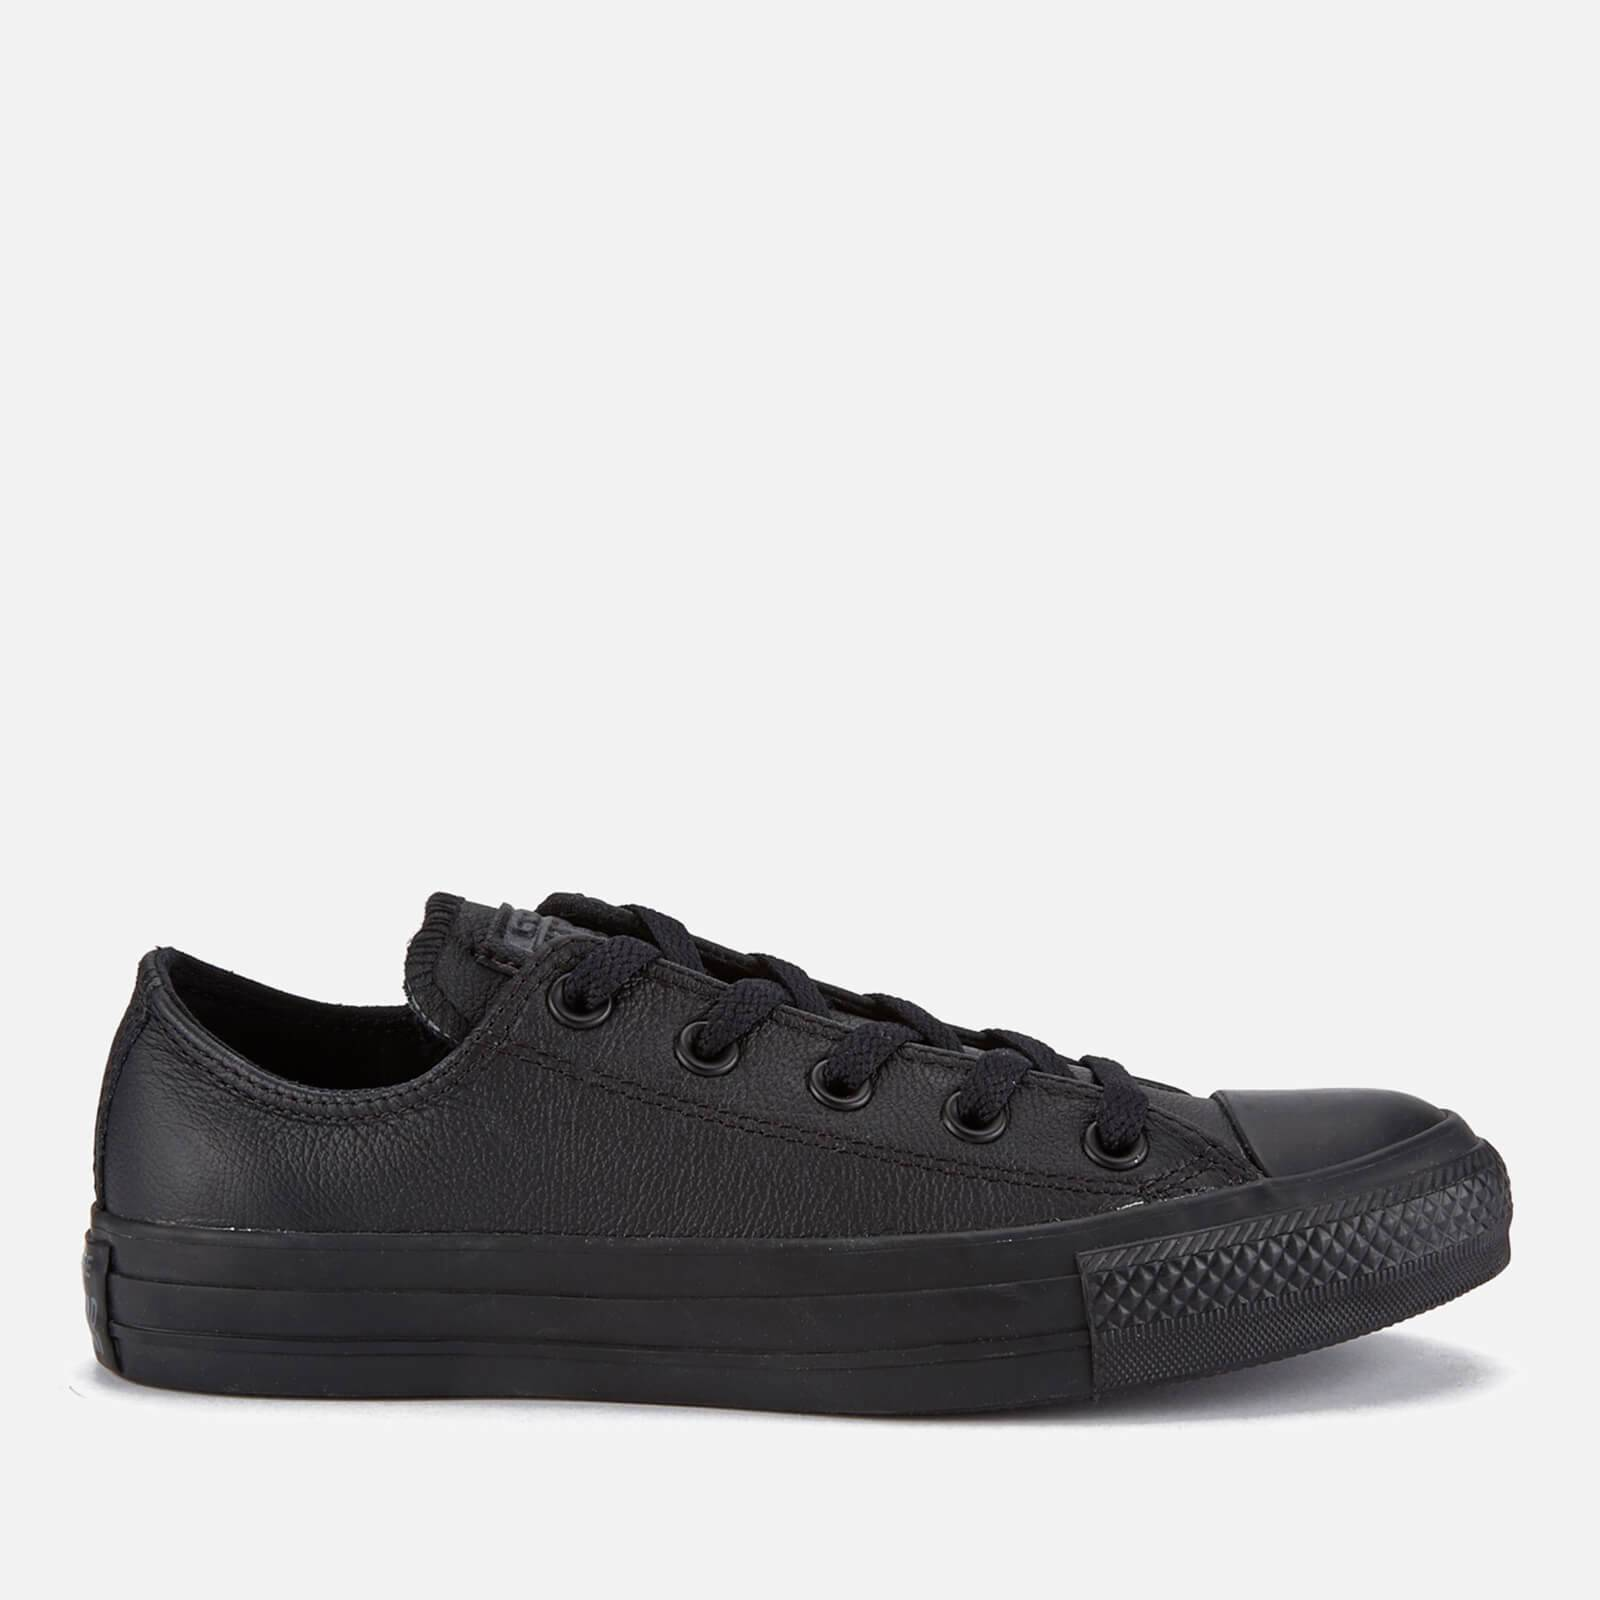 Converse Chuck Taylor All Star Ox Trainers - Black Mono - UK 3